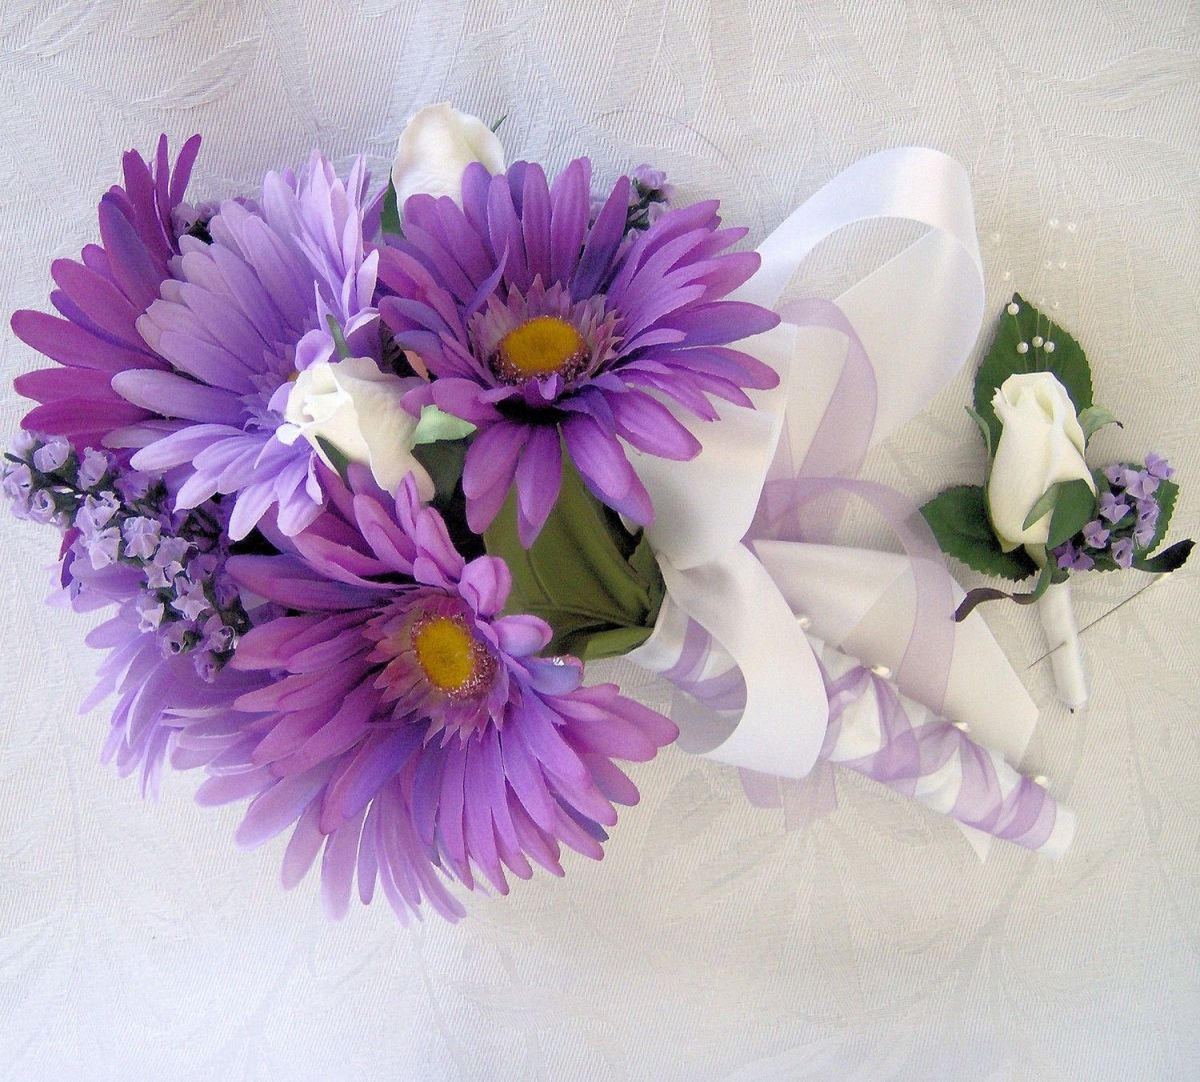 These lovely purple daisies are an option for a pop of color